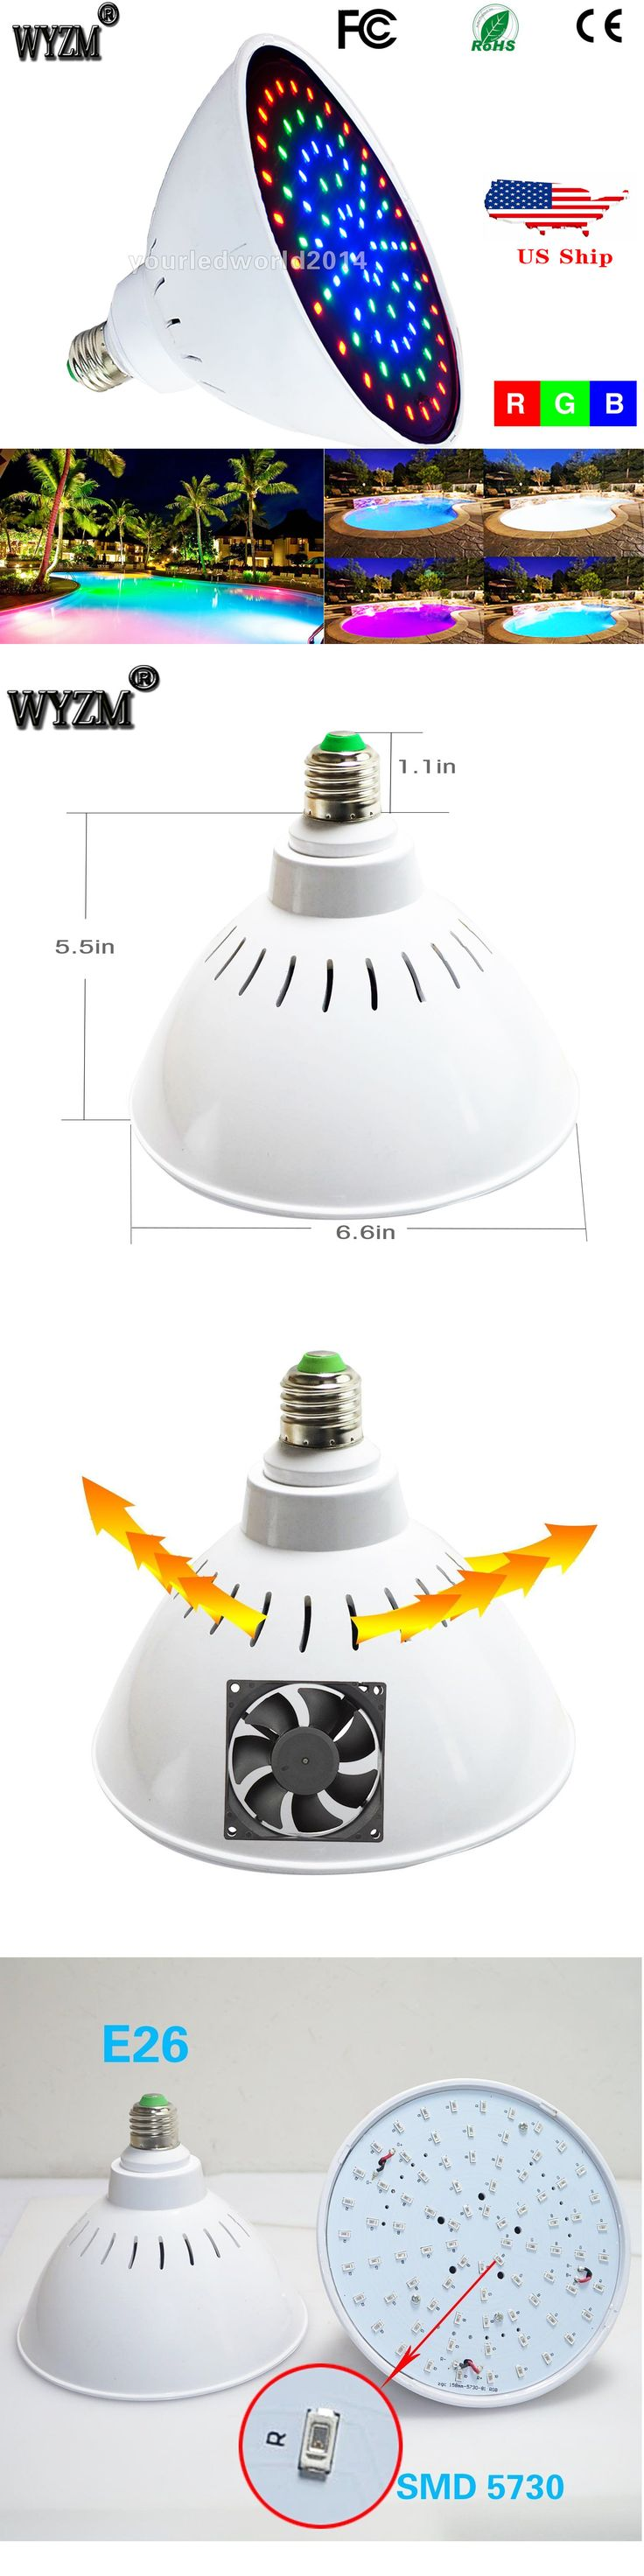 12w led 5050smd corn bulb spot light warm white lamp g4 ebay - Pool And Spa Lights 167862 20w 35w 12volt Color Changing Replace Swimming Pool Lights Bulb